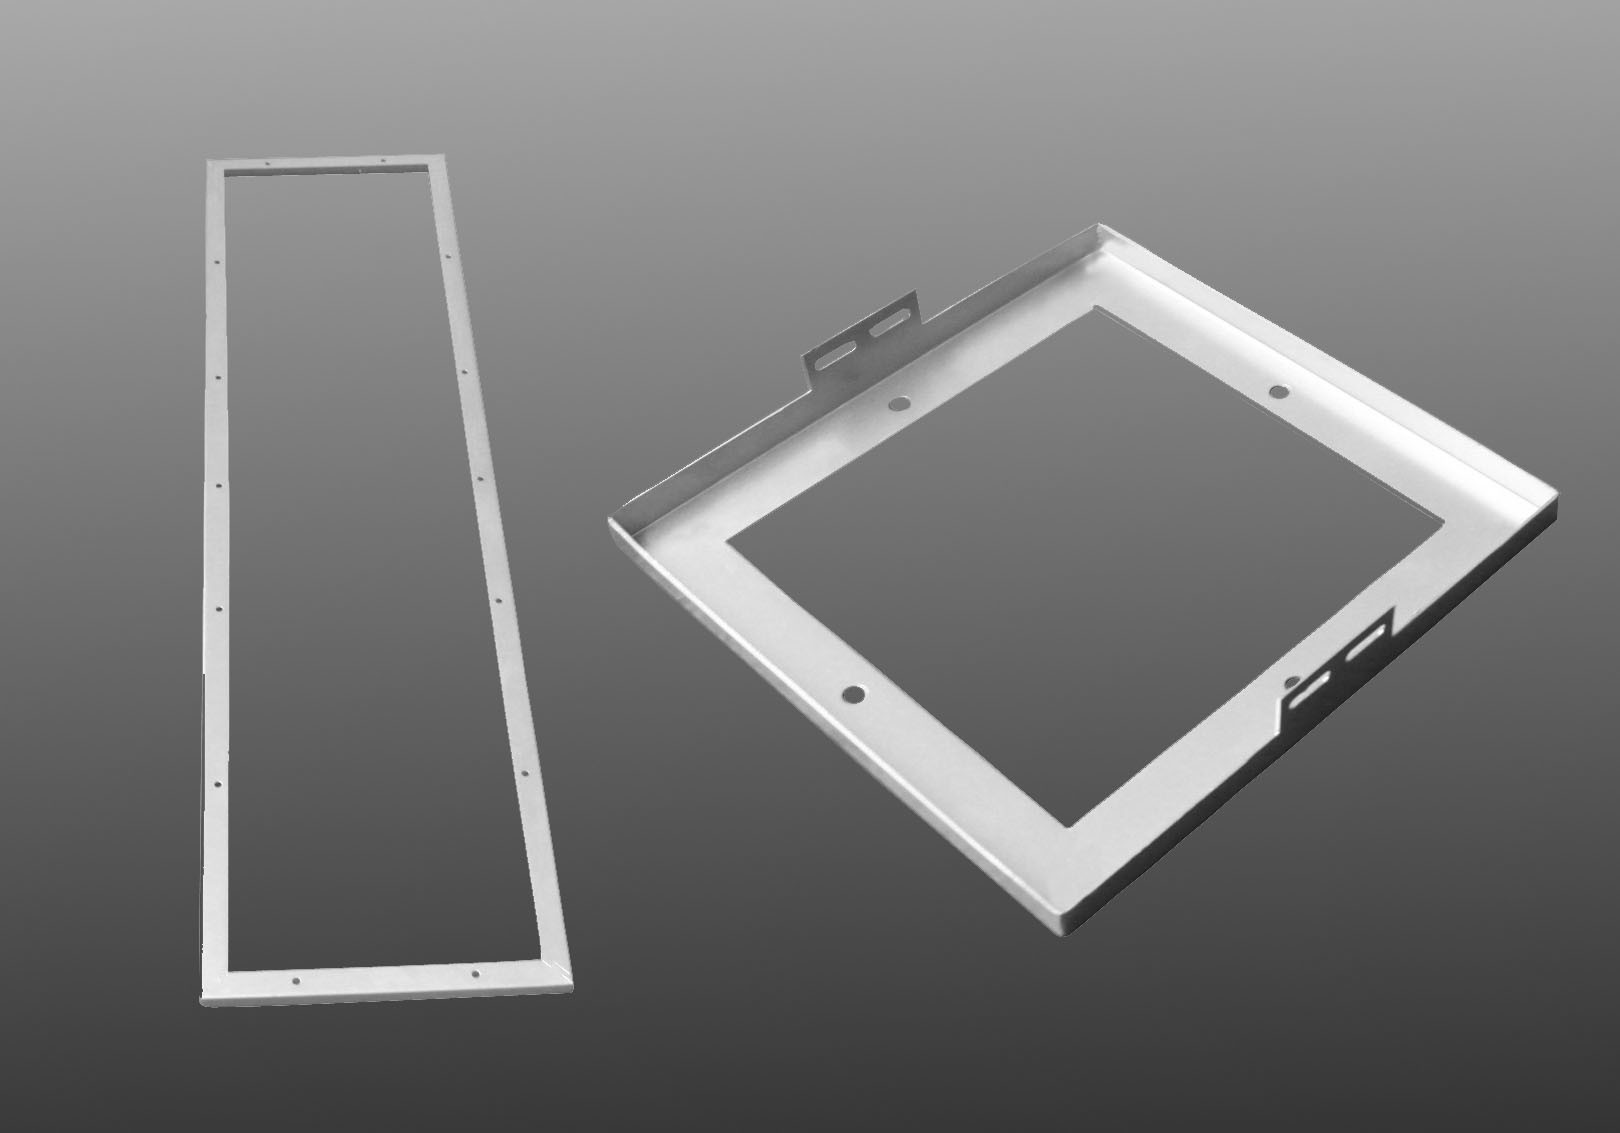 China 300x1200 led panel ceiling concealed mounting - Concealed led ceiling lights ...